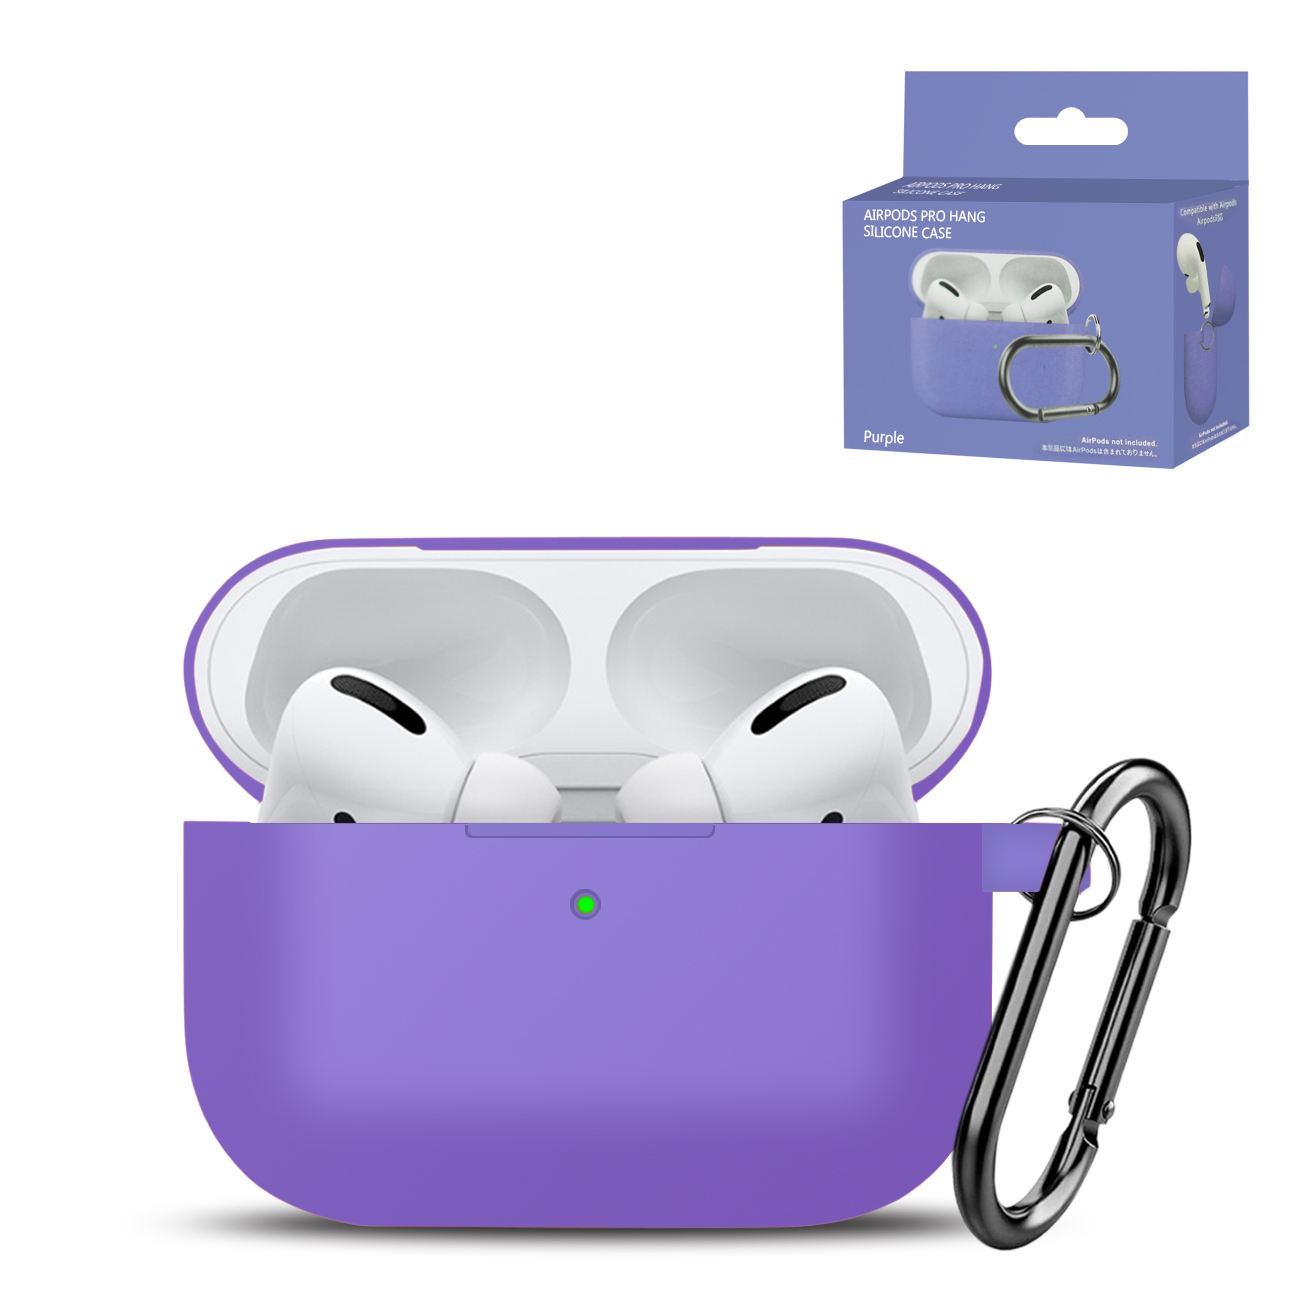 High Quality Airpods Pro Case In Purple